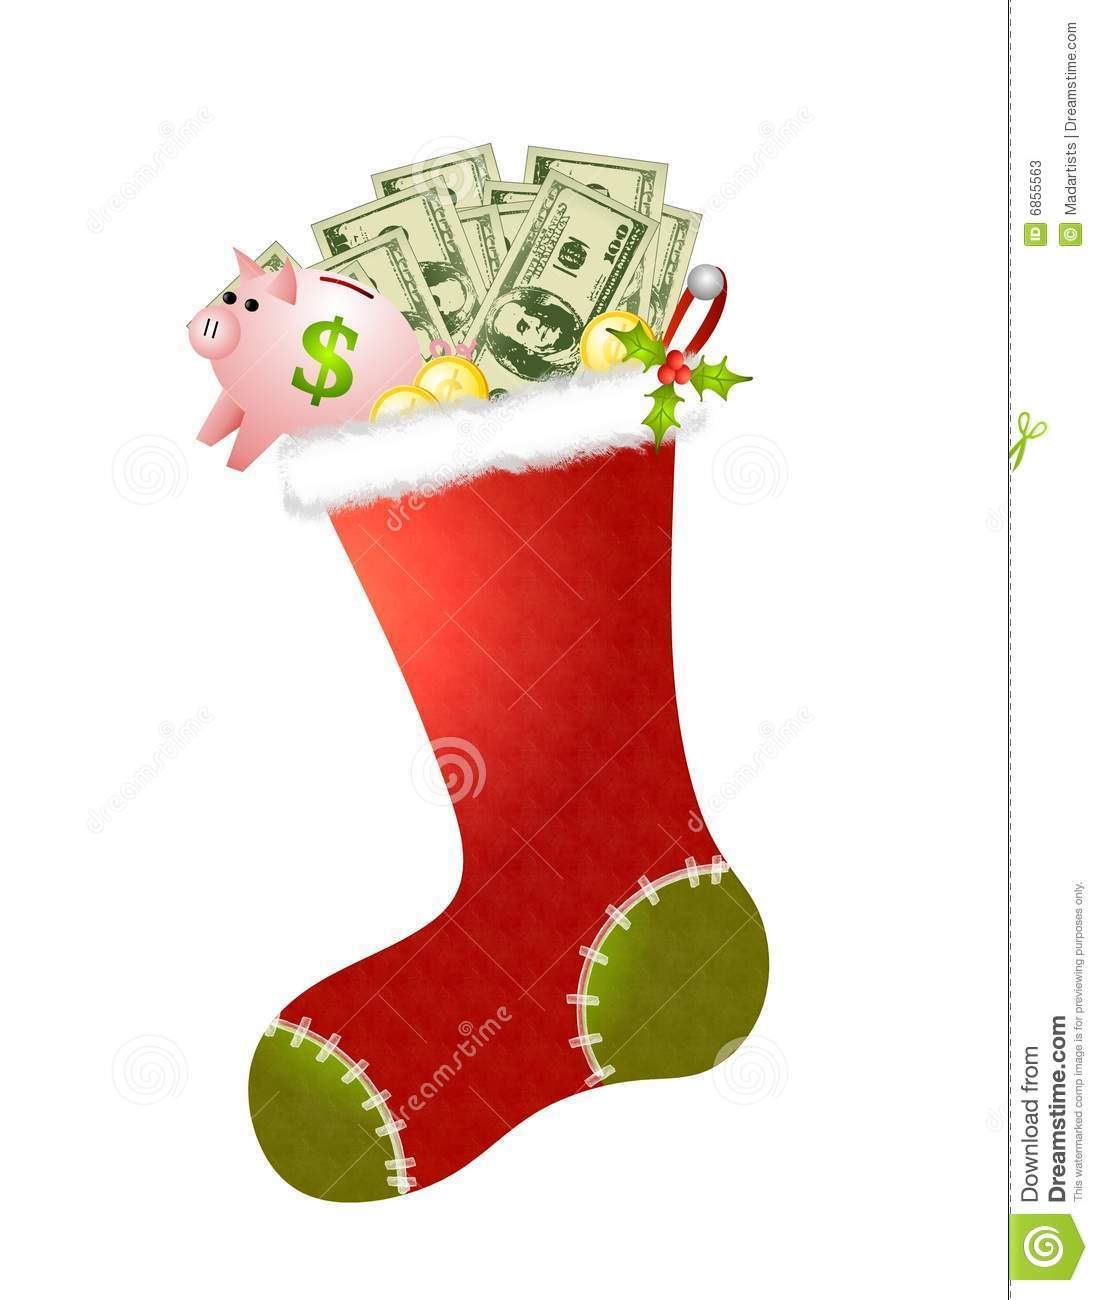 Christmas money clipart.